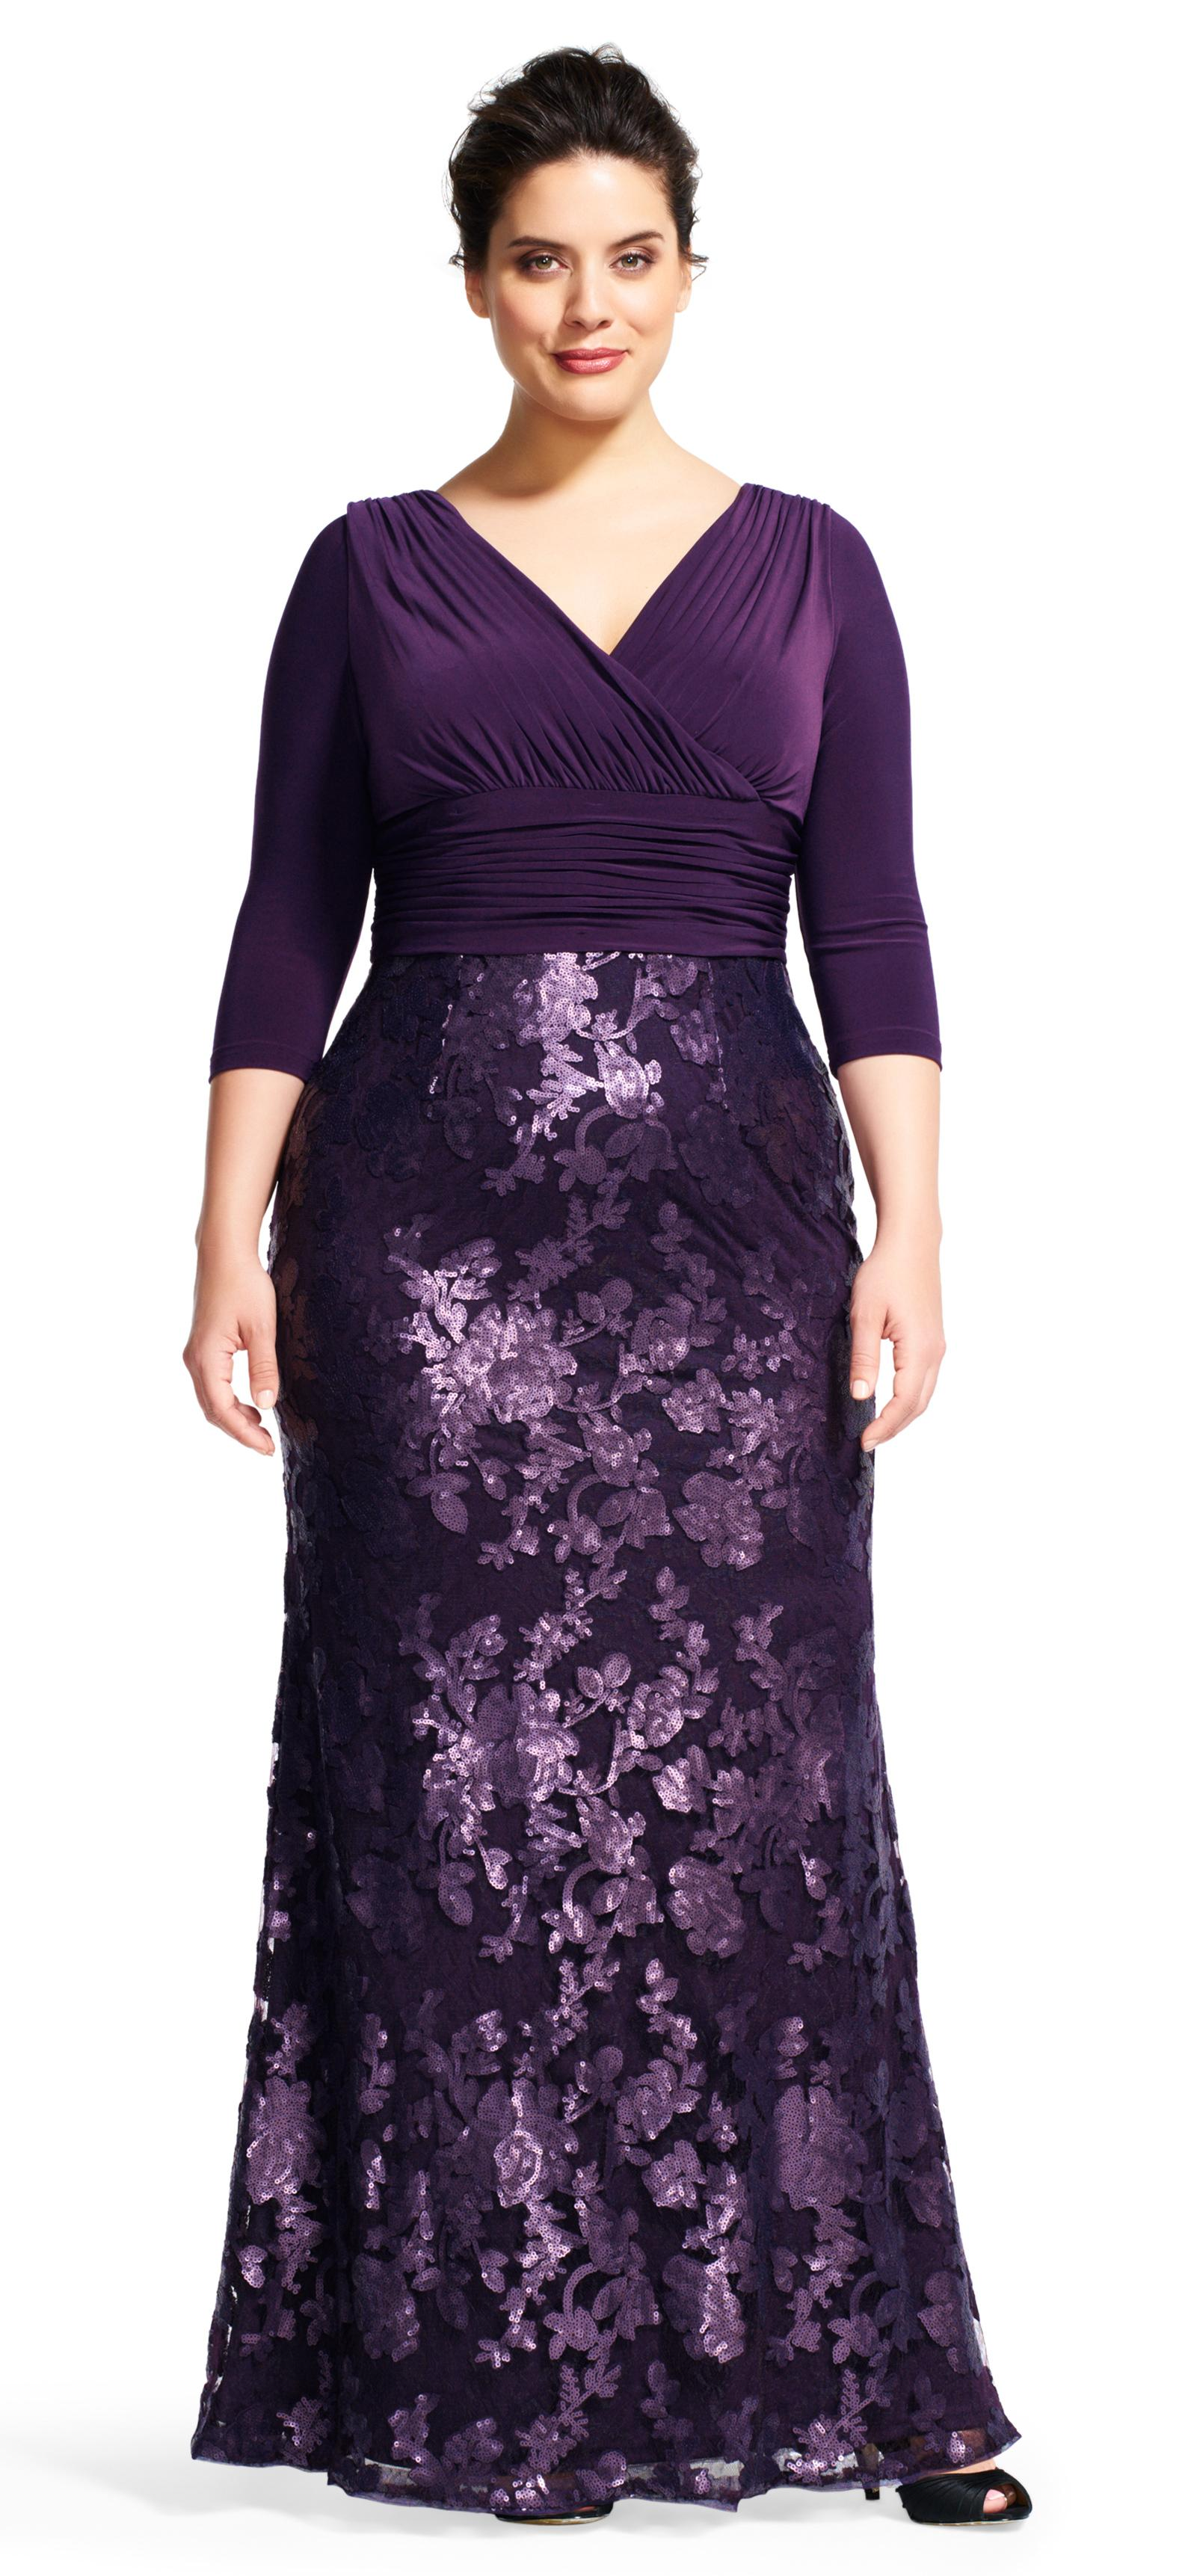 Lyst - Adrianna Papell Sequin Floral Lace Dress With Draped Jersey ...